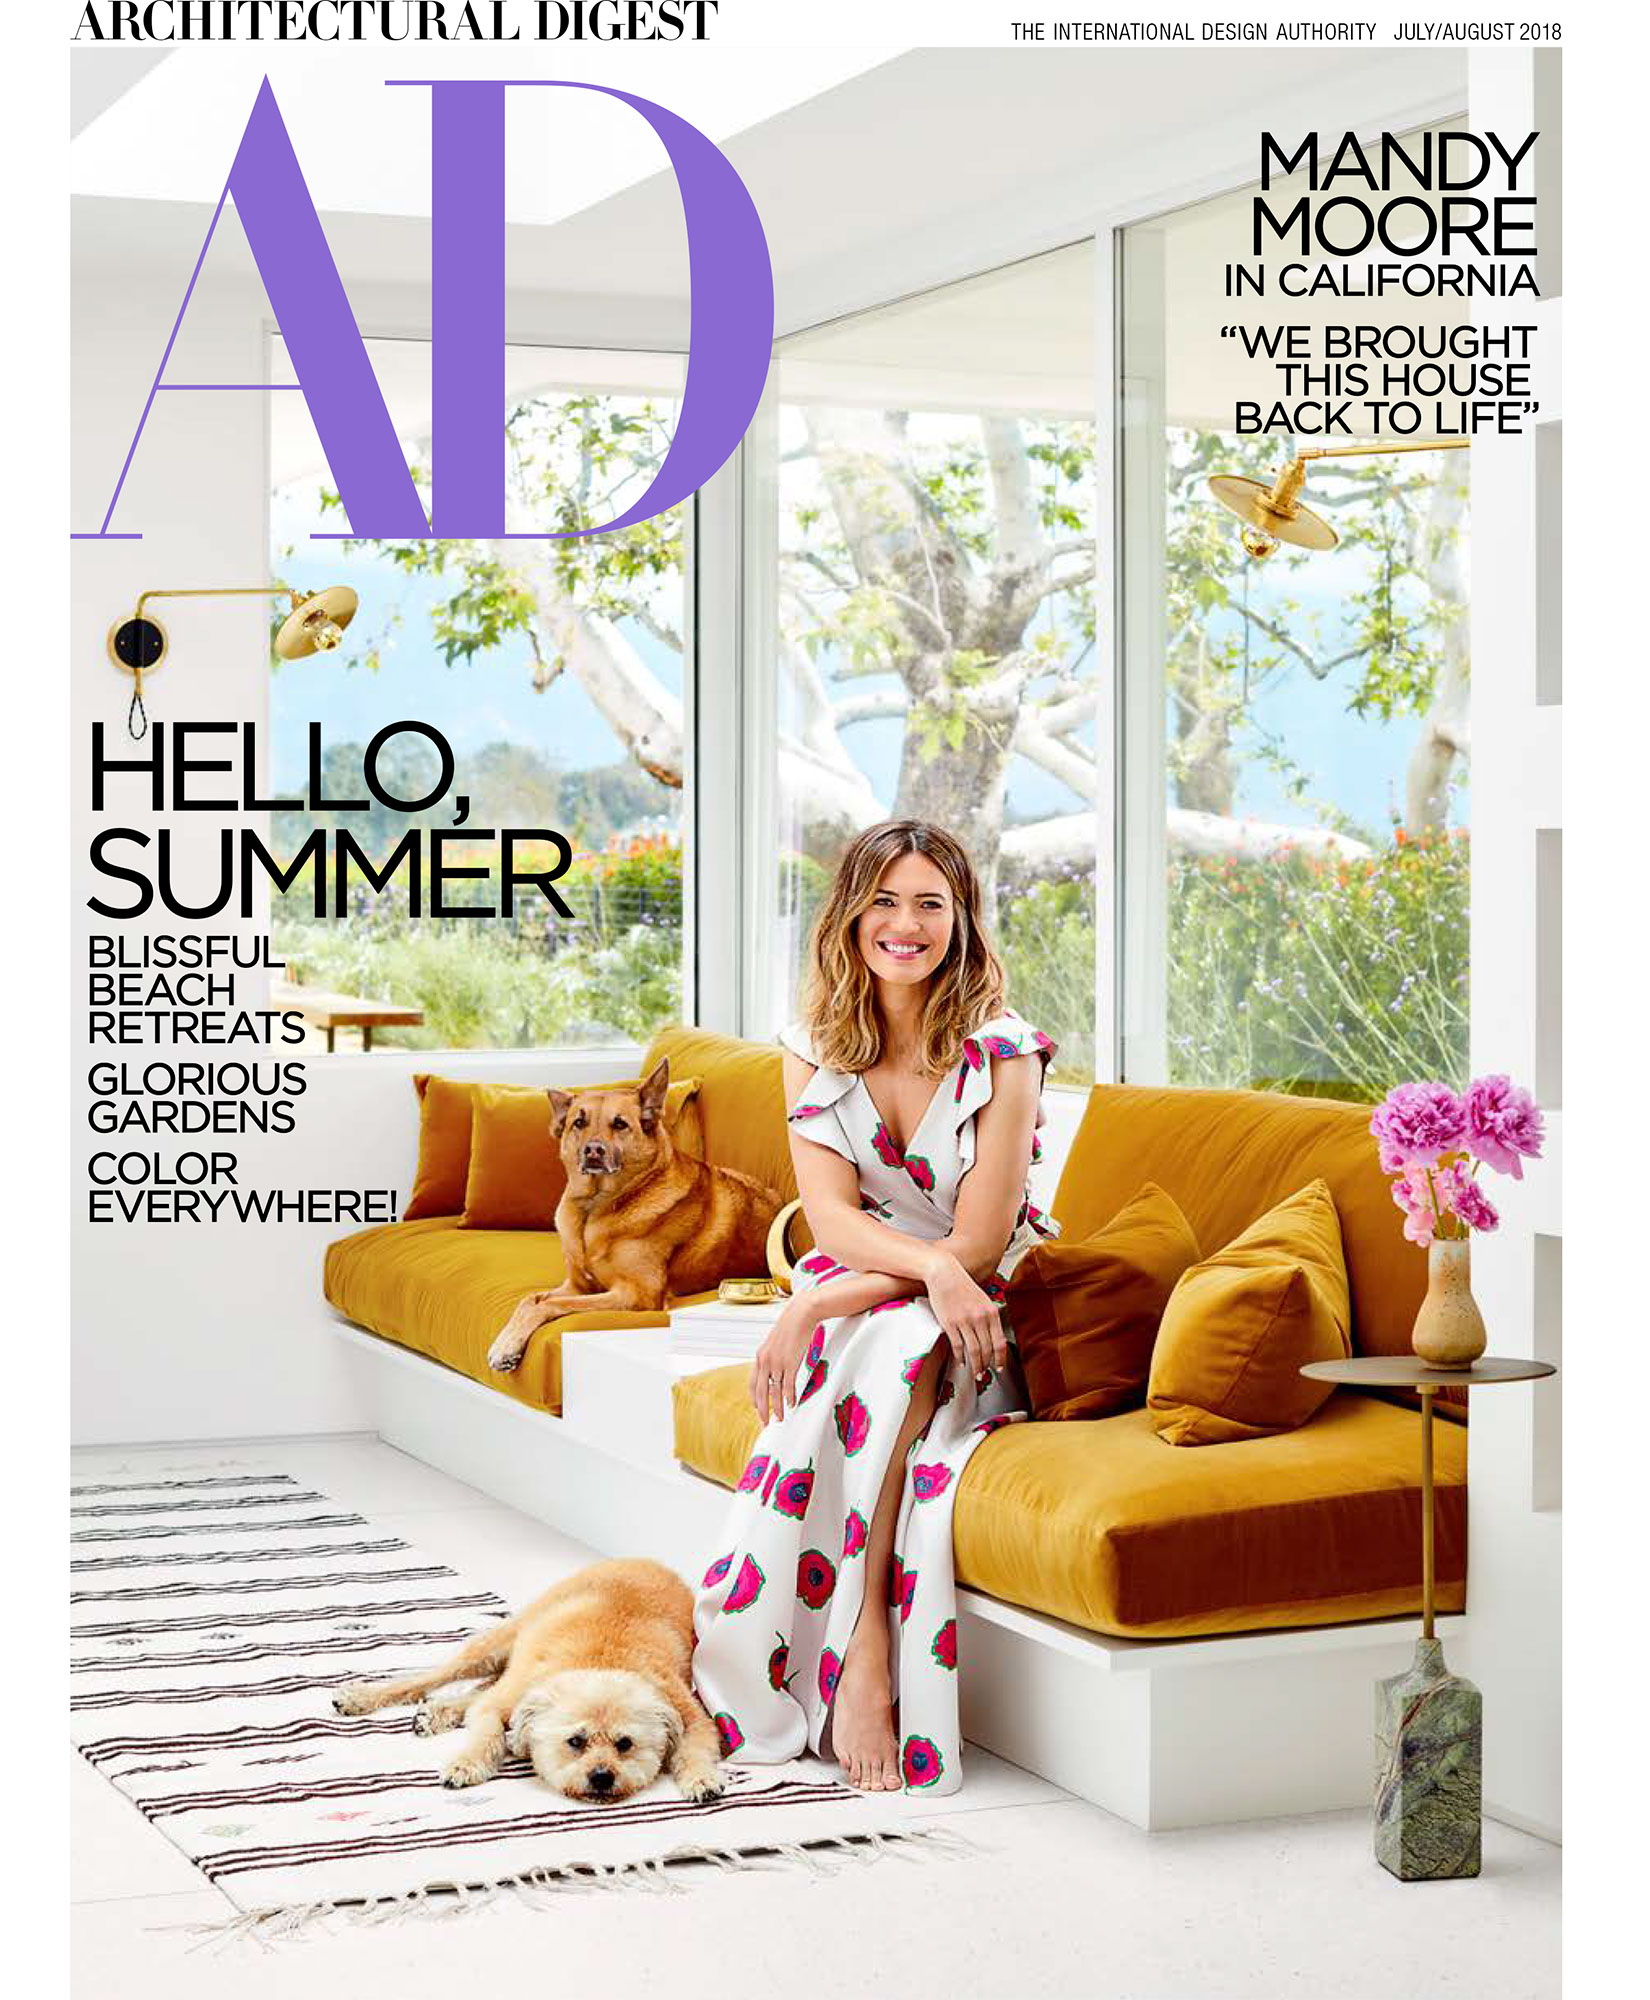 mandy-moore-house-architectural-digest-1